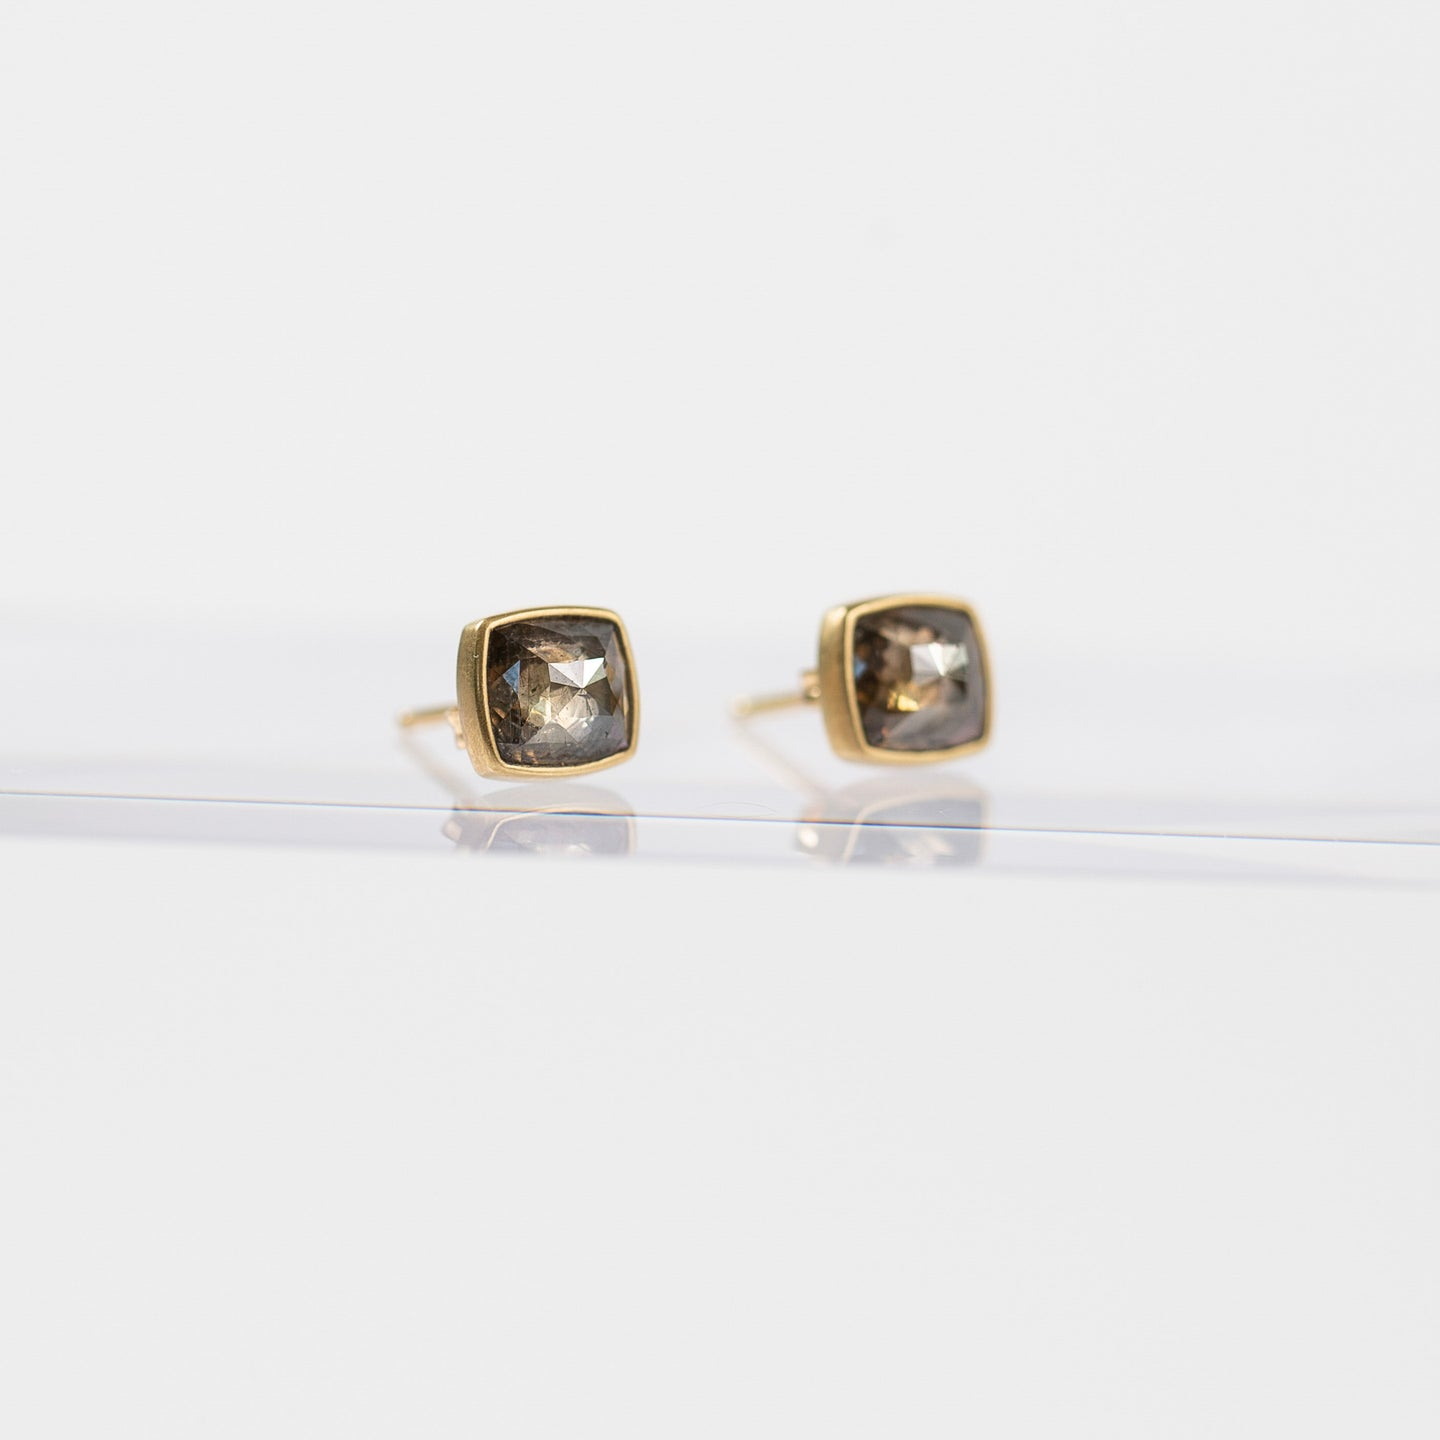 Lola Brooks<br>Cushion Cut Champagne Diamond Studs 2.17 carats 18K